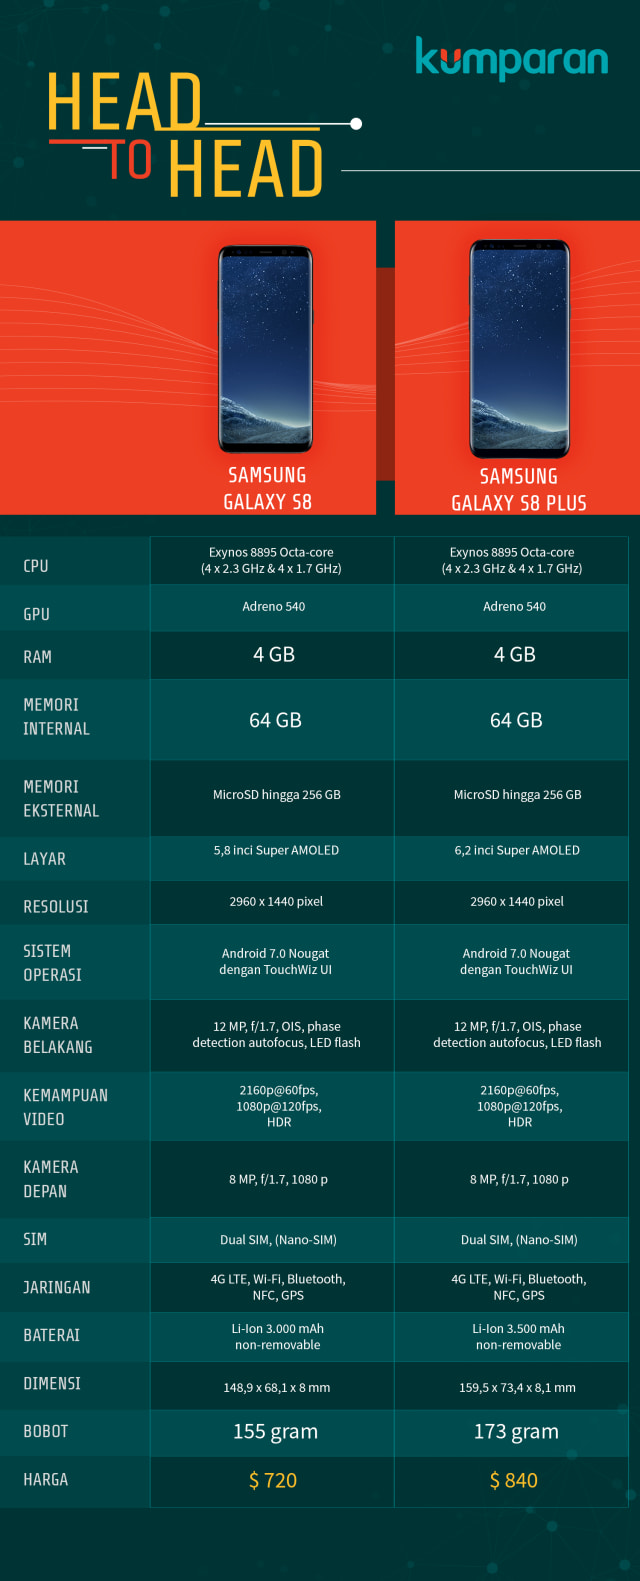 Samsung Galaxy S8 VS V8 Plus